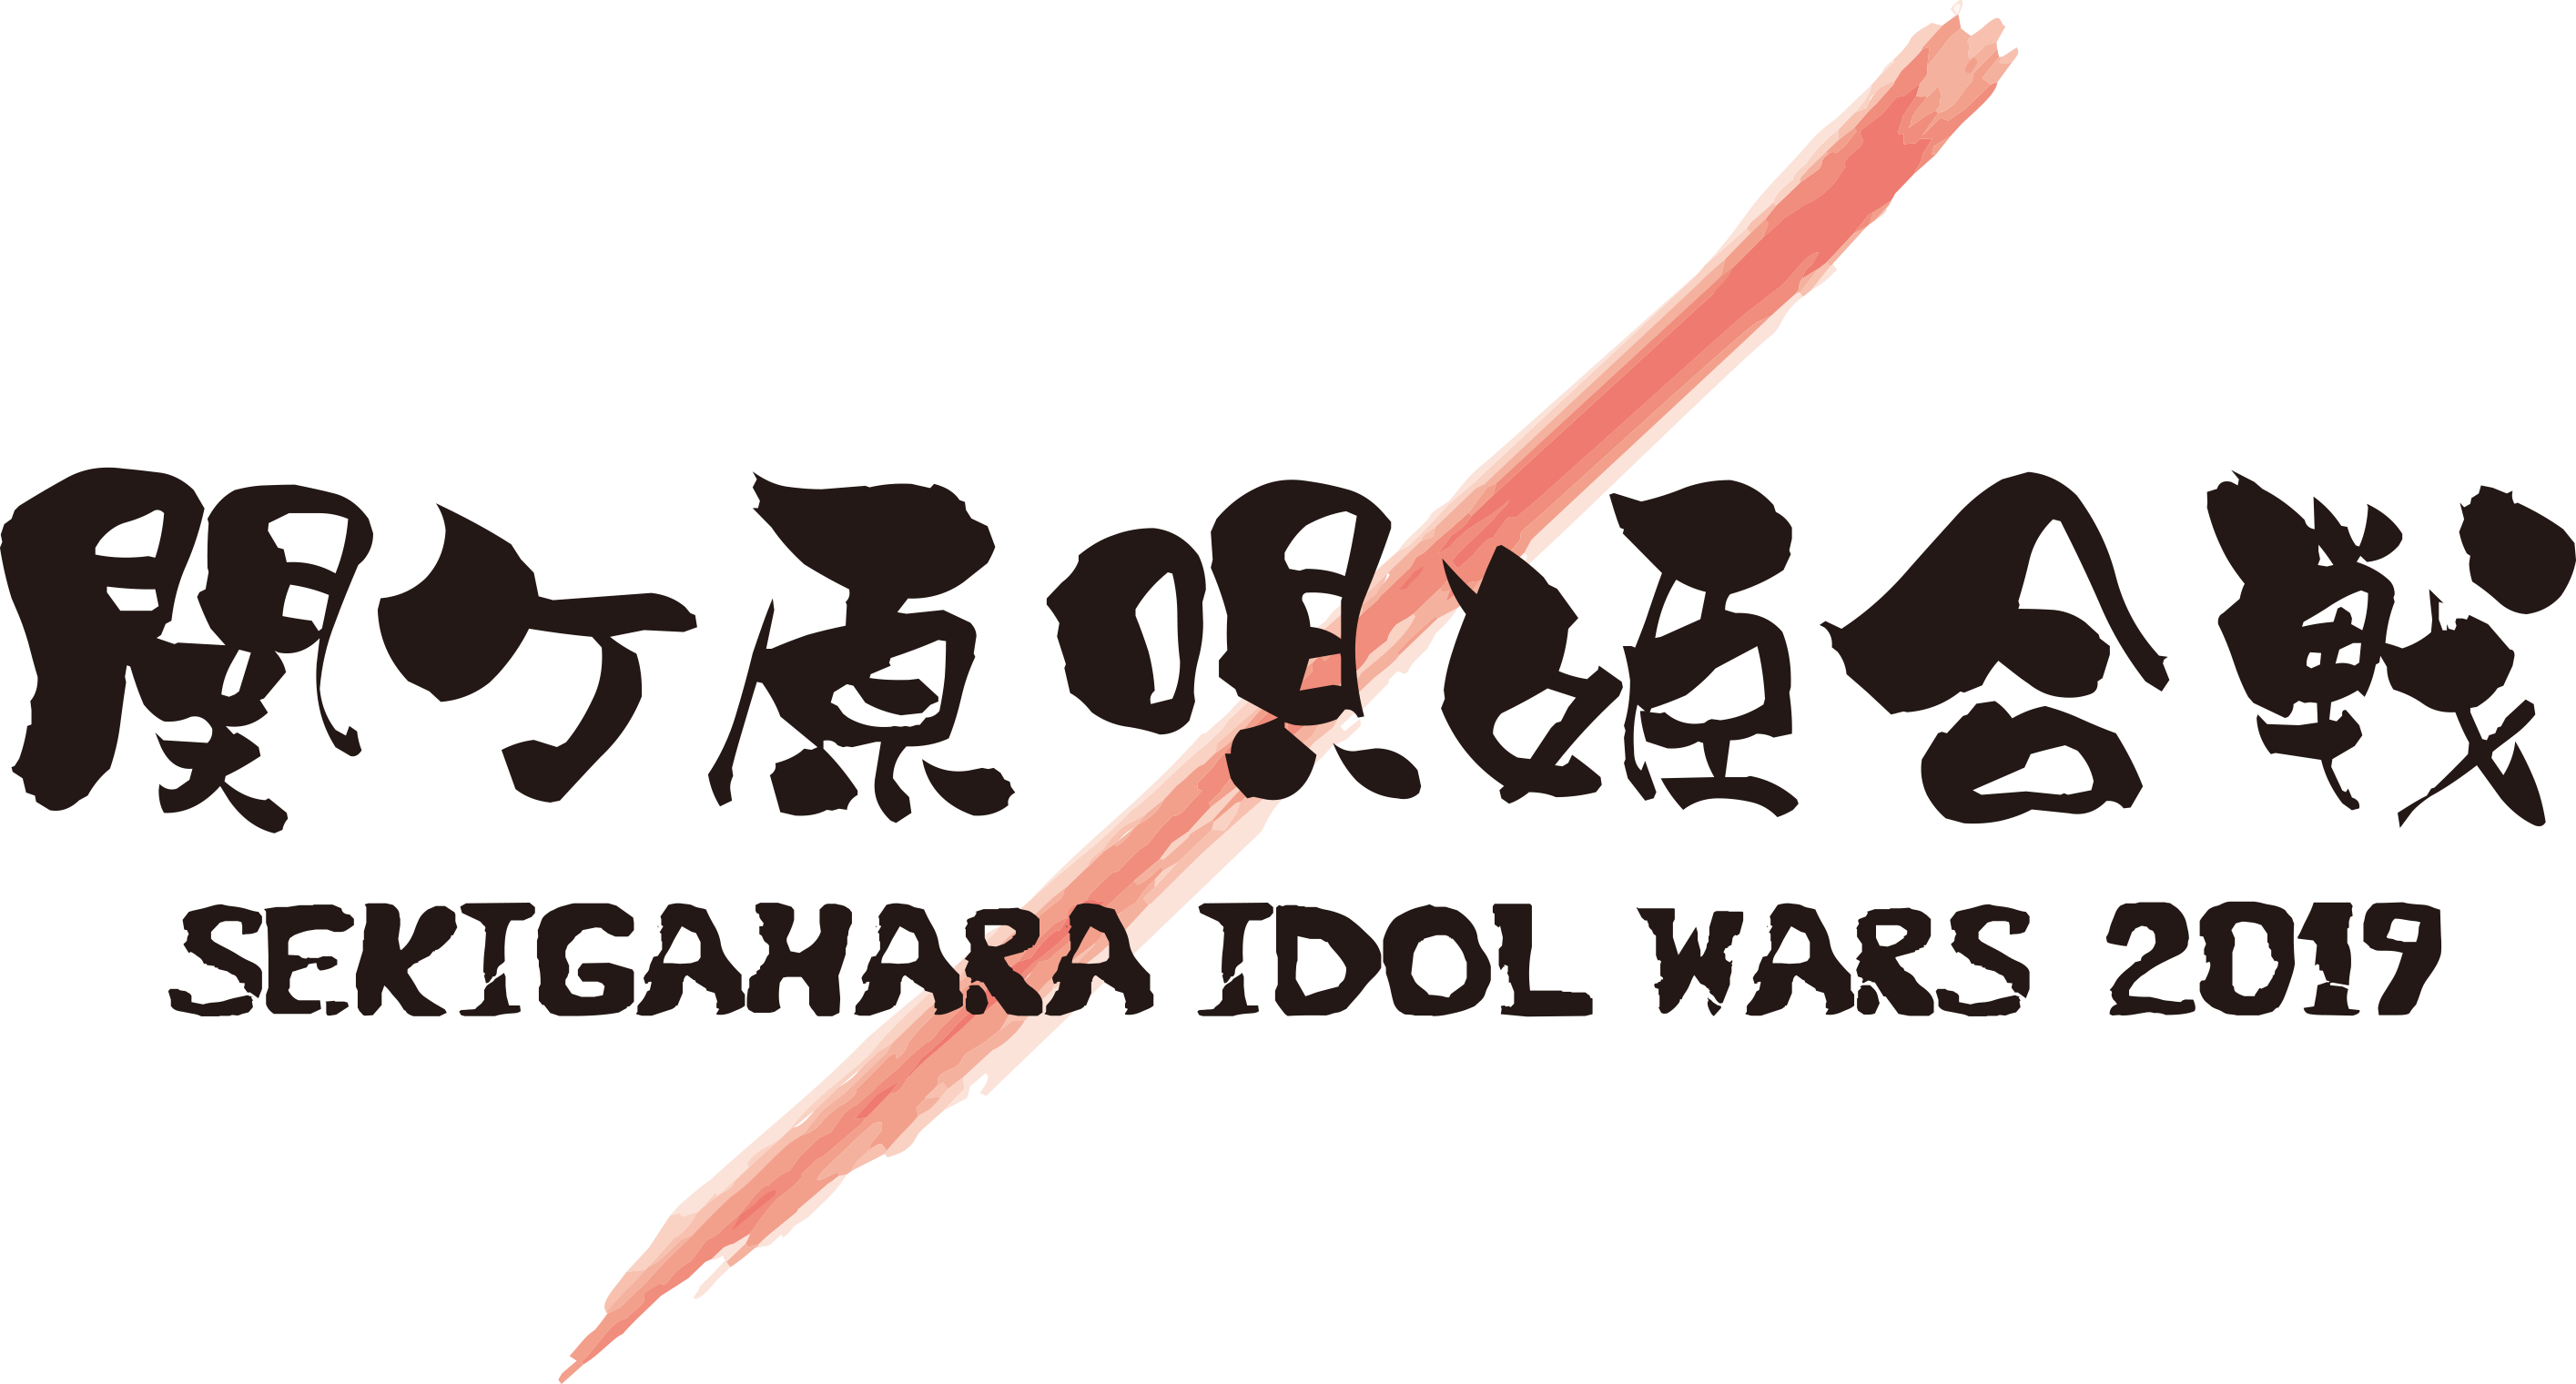 SEKIGAHARA IDOL WARS 2019